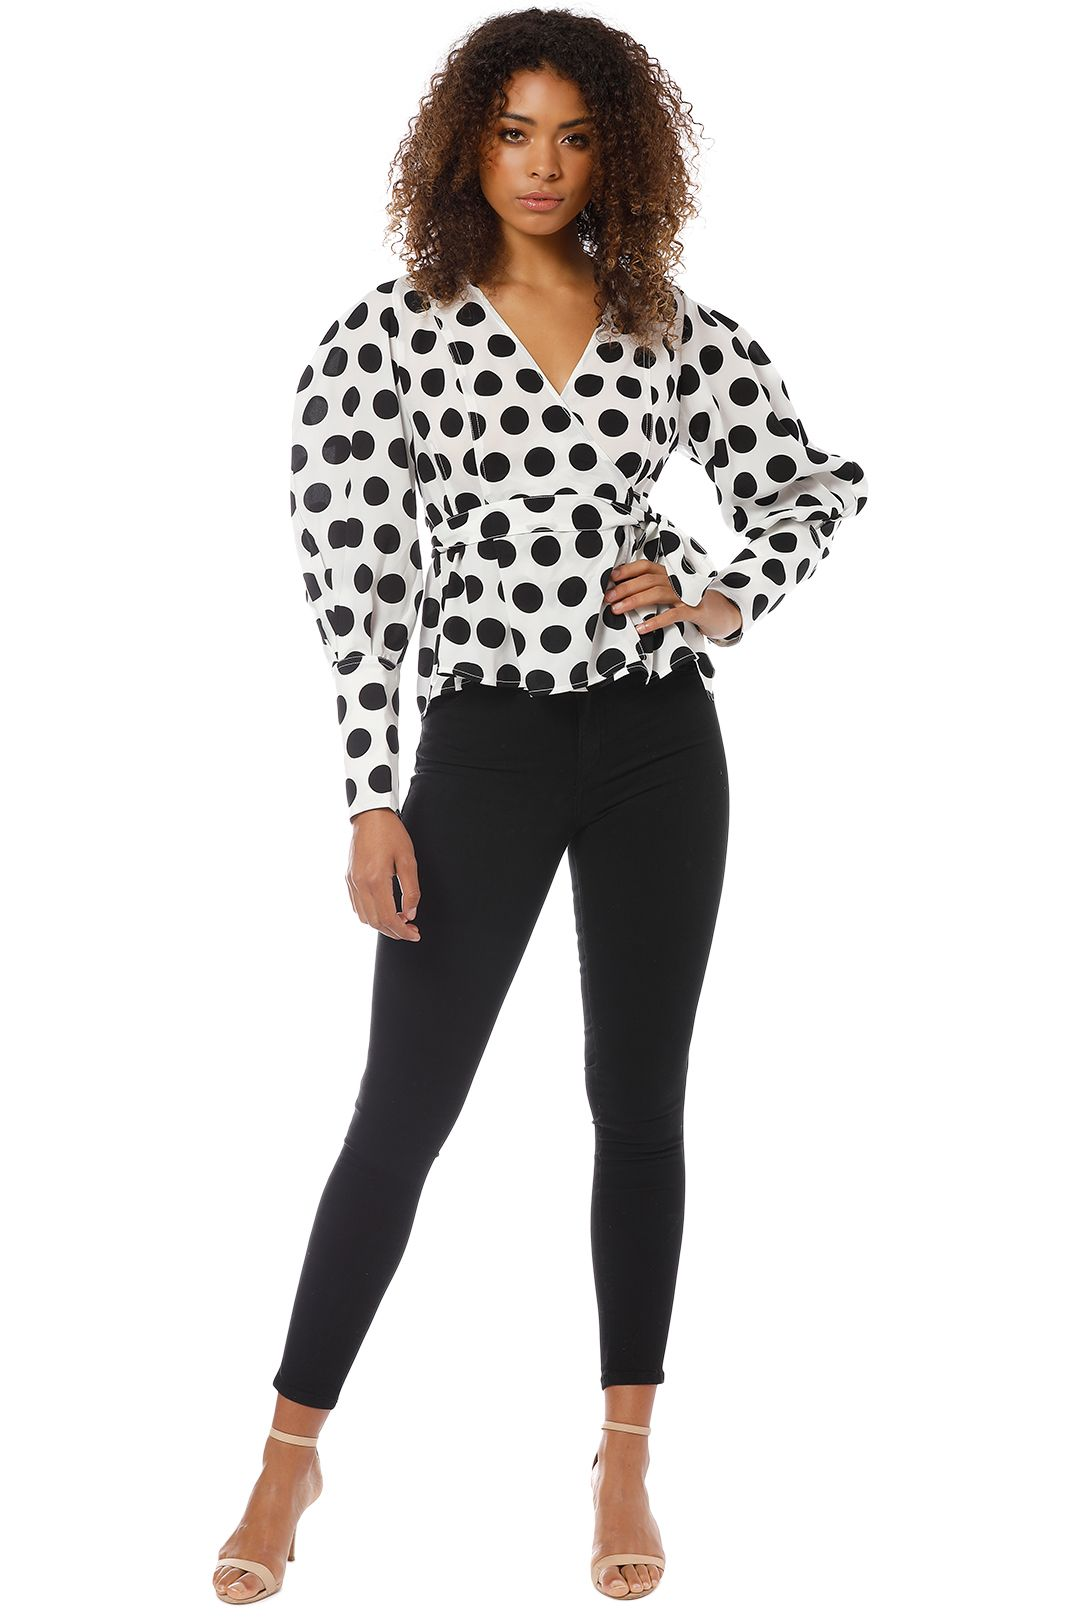 CMEO Collective - Unending LS Top - Black and White - Front